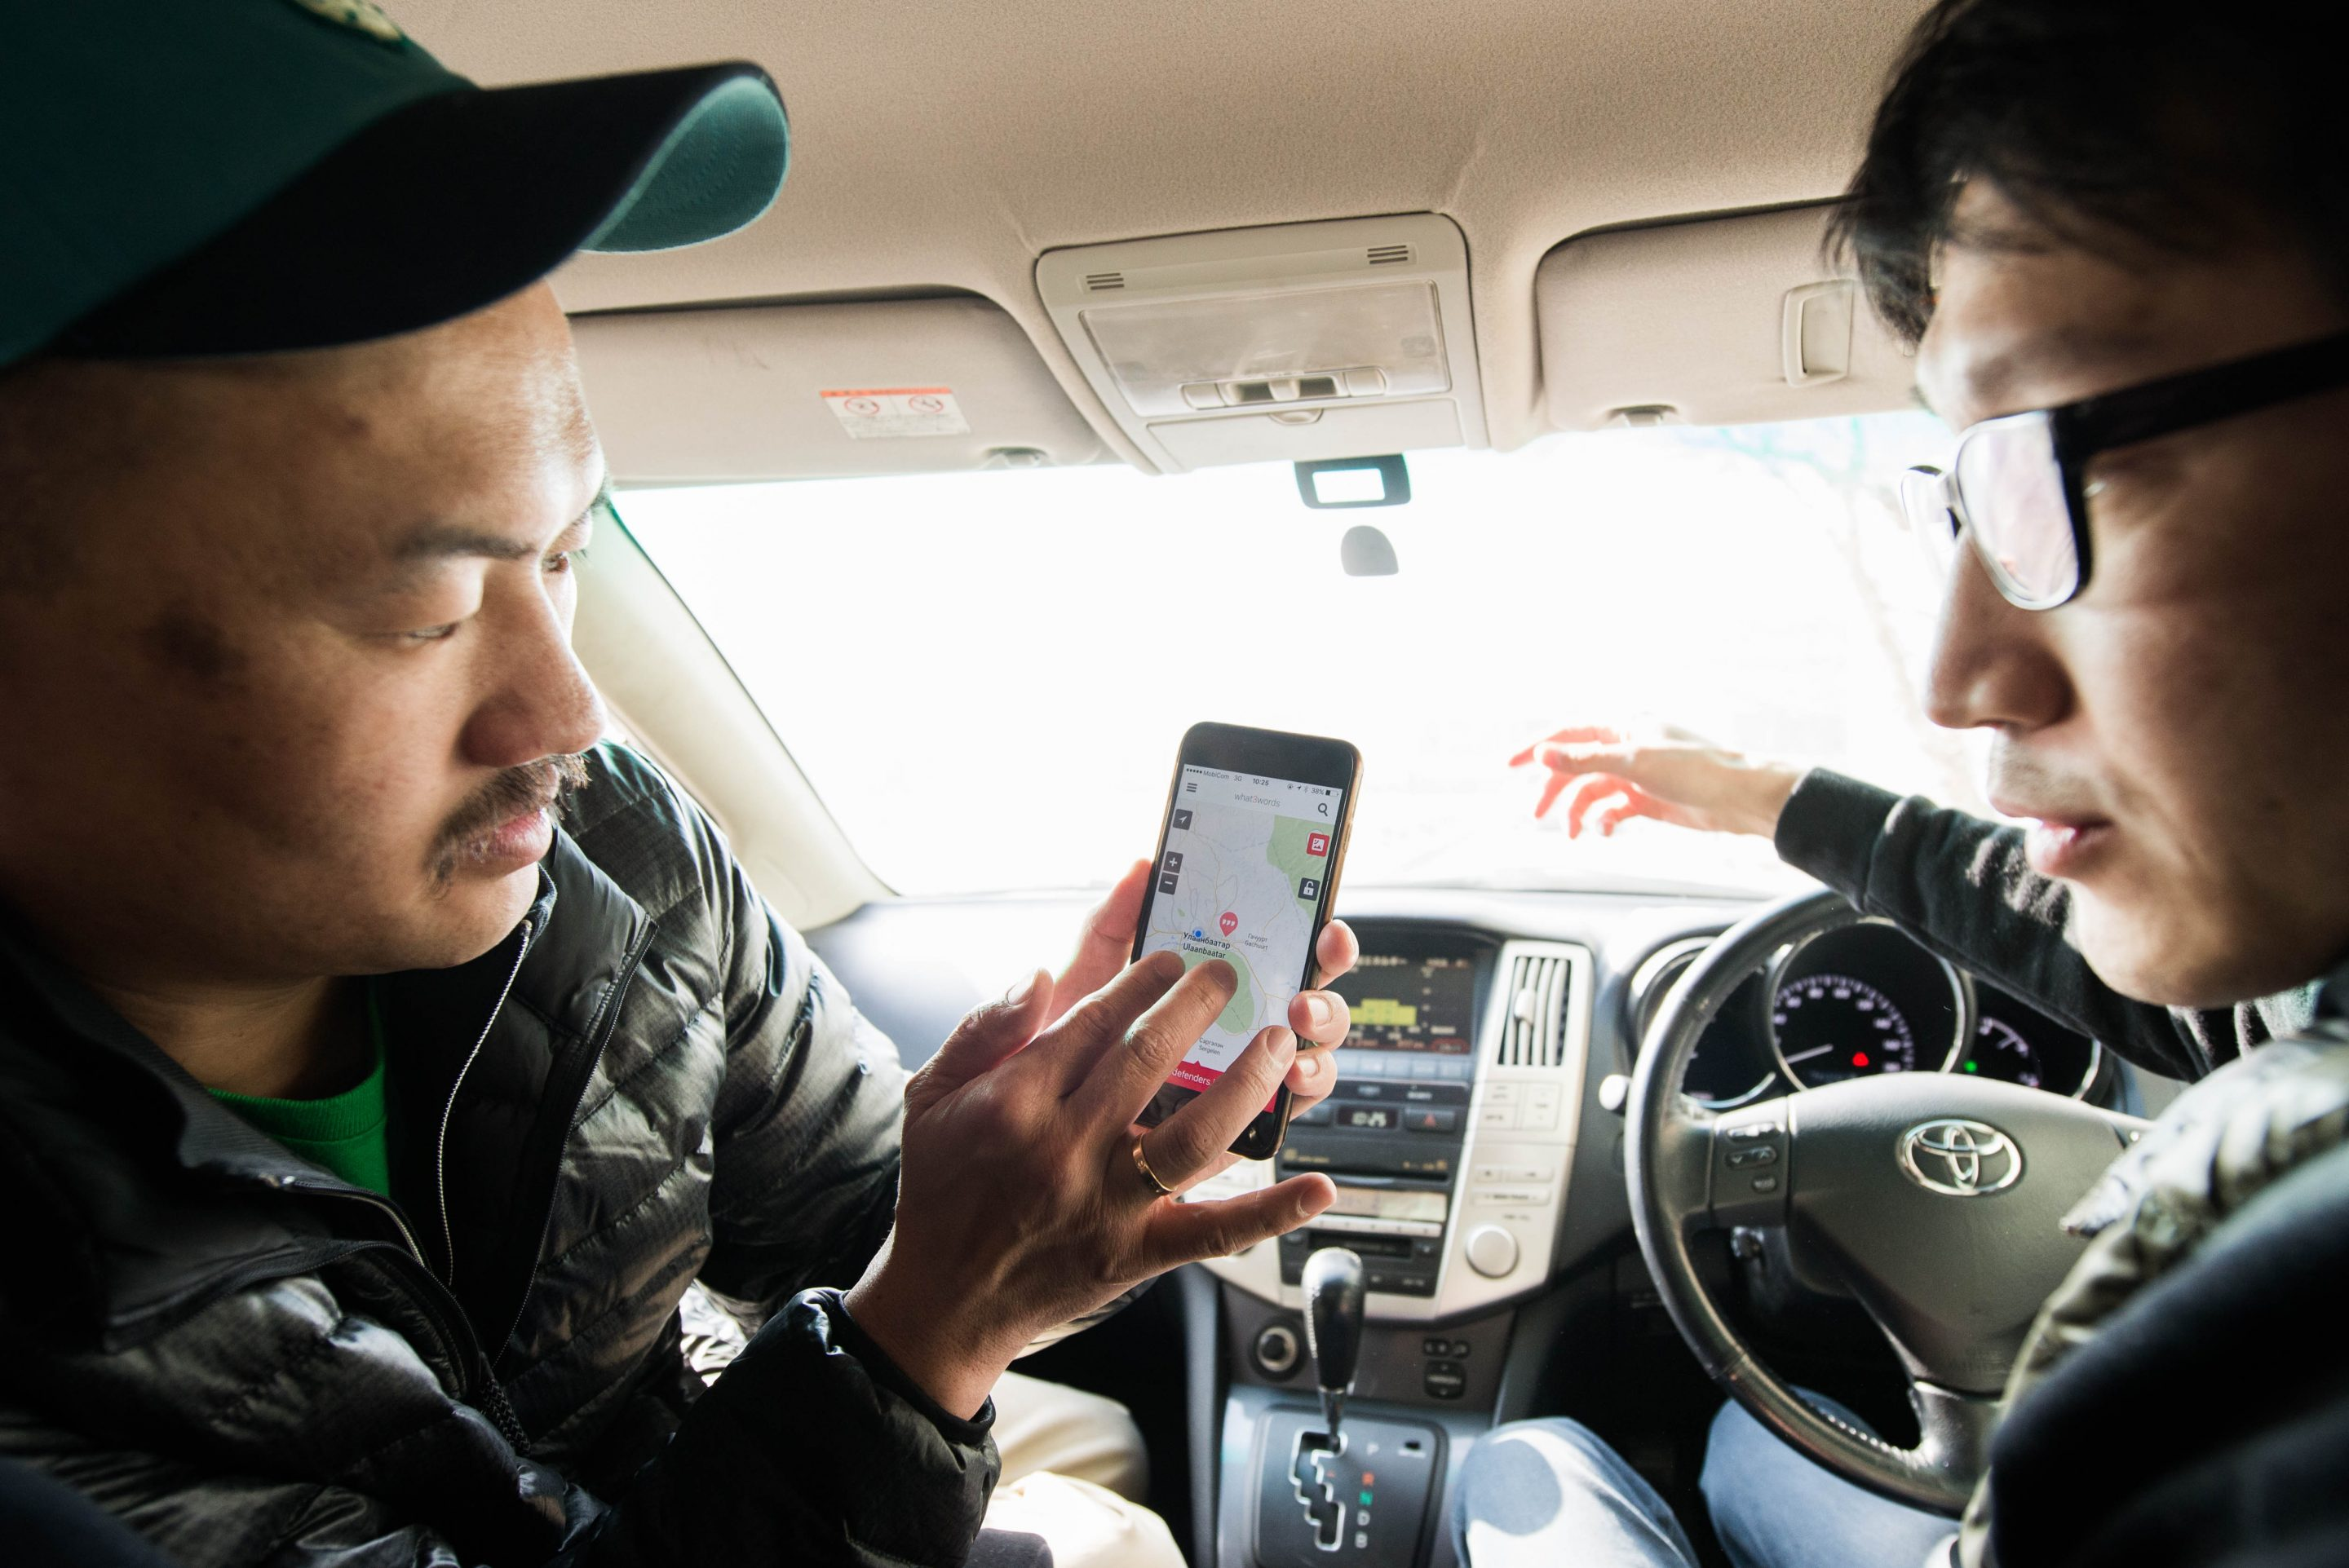 two men look at what 3 words app in car